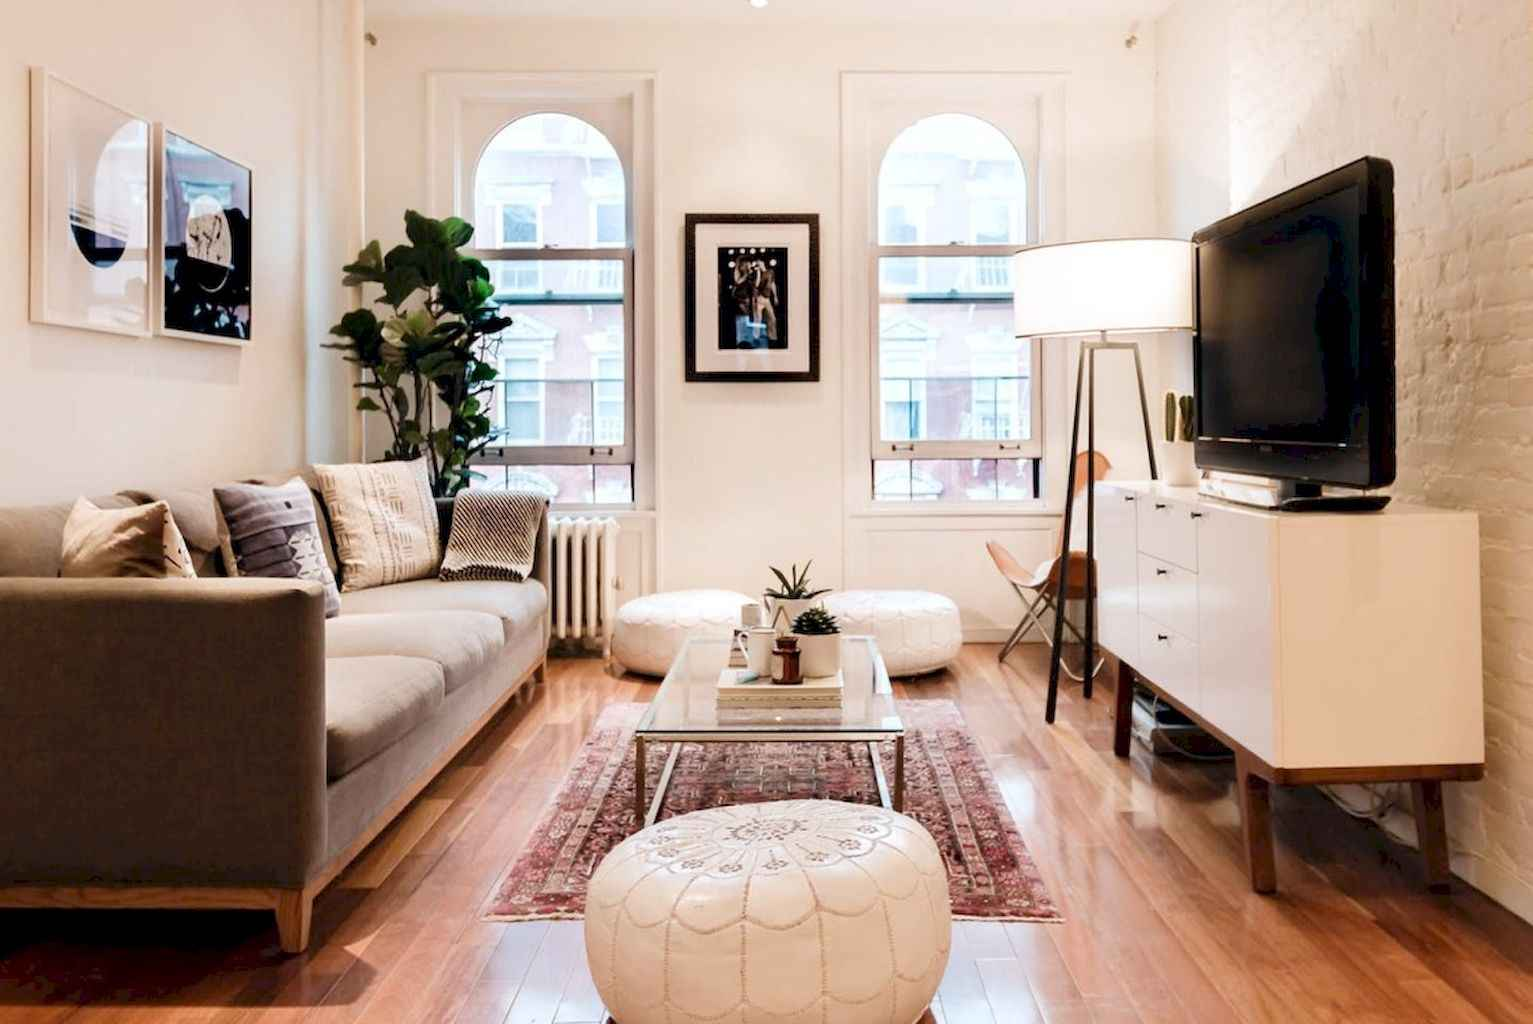 Couples first apartment decorating ideas (65)